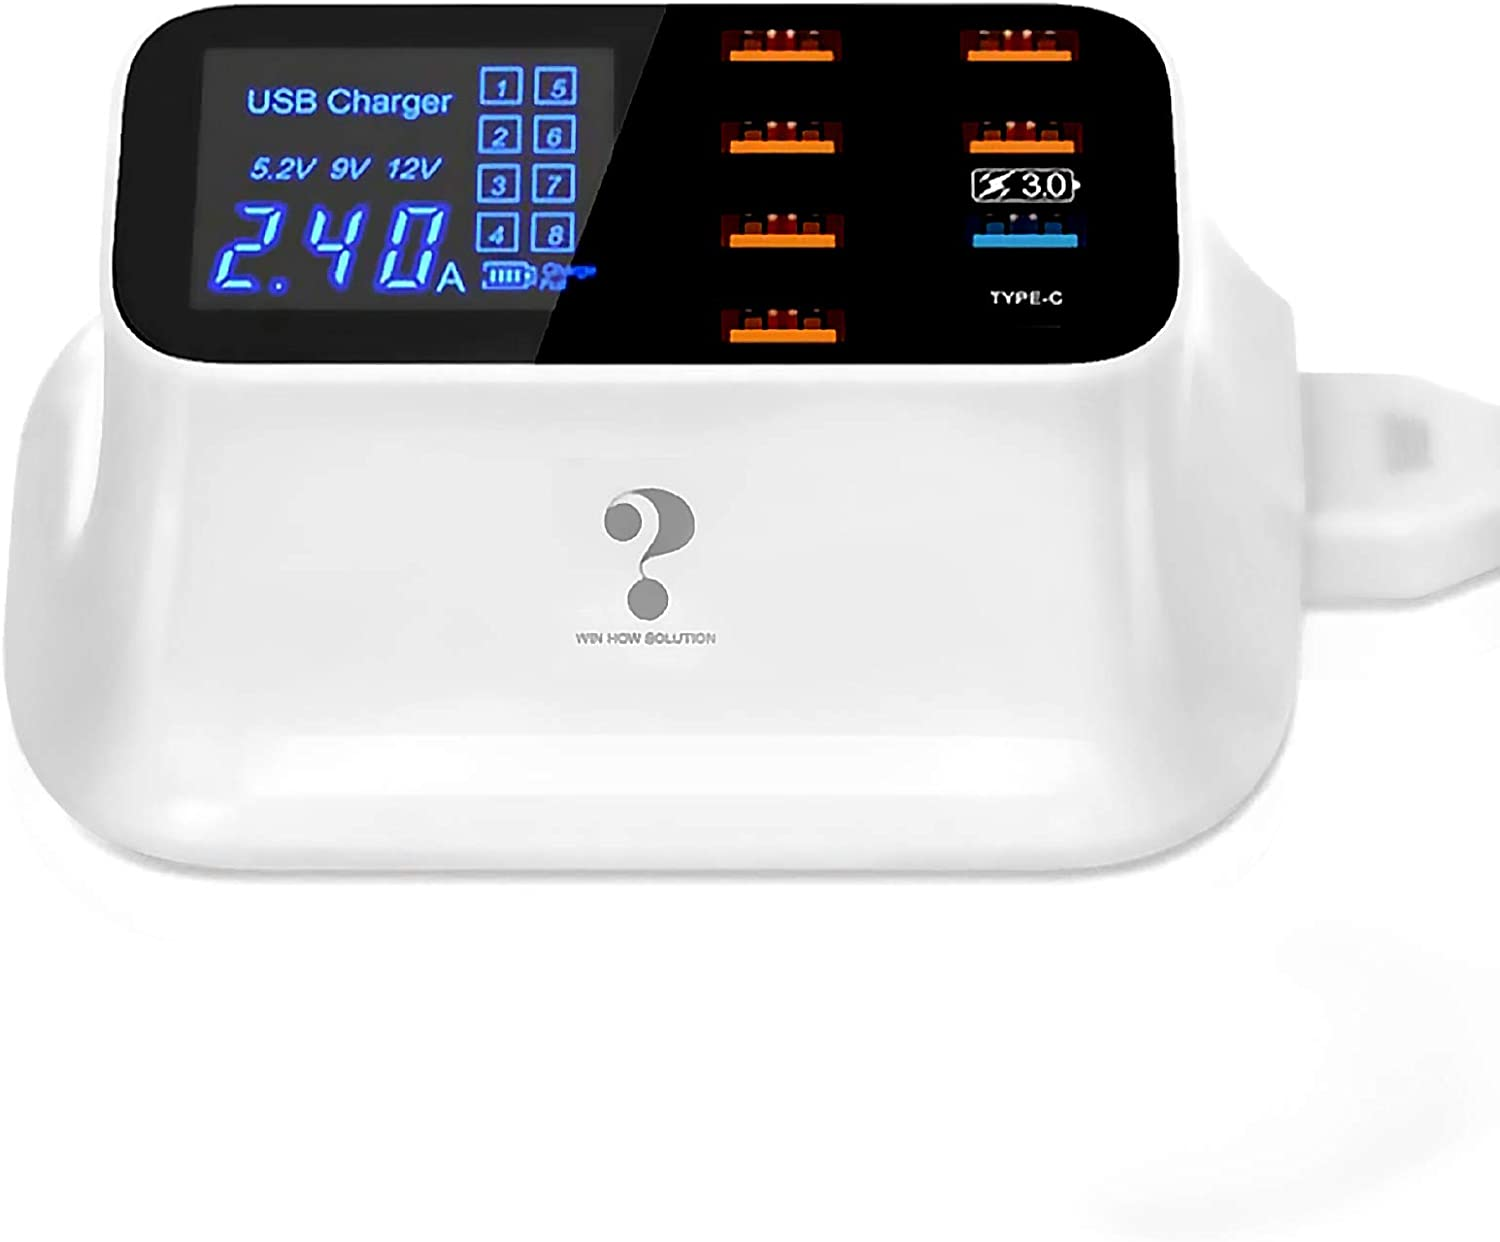 WIOR Multi Port USB Charger, 8-Port USB Charging Station with Quick Charge 3.0 USB Port, Type C Port and LCD Display, Compatible with iOS & Android Devices (iPhone, Ipad, Huawei, Samsung Galaxy)